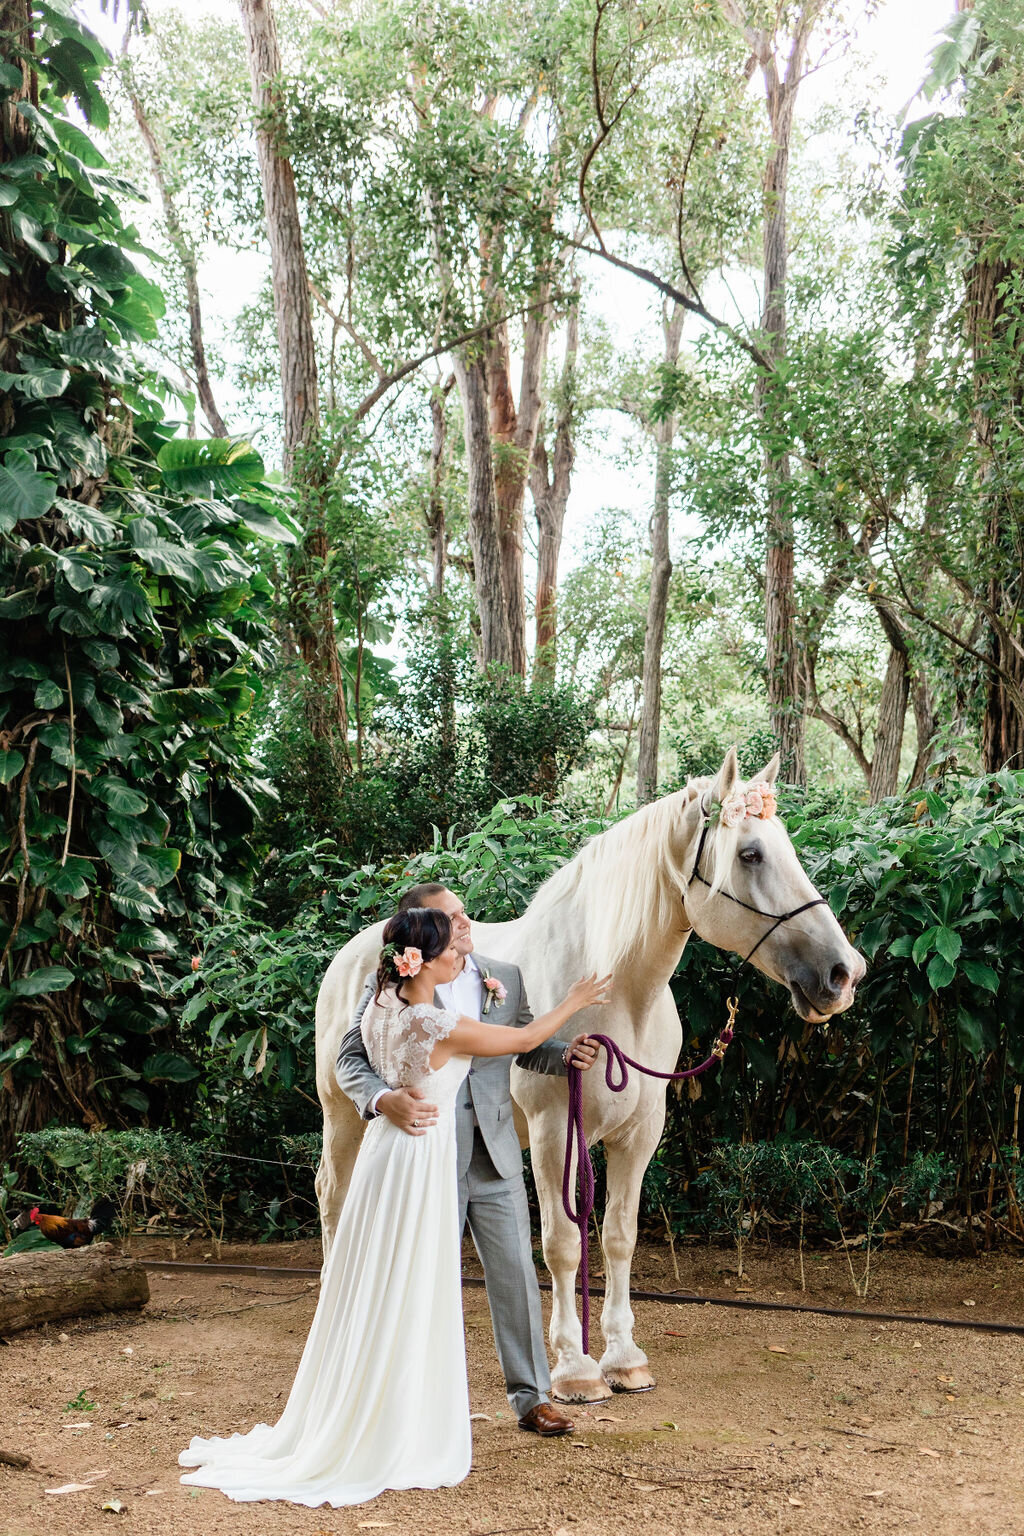 Romantic Southern California Elopement Ideas